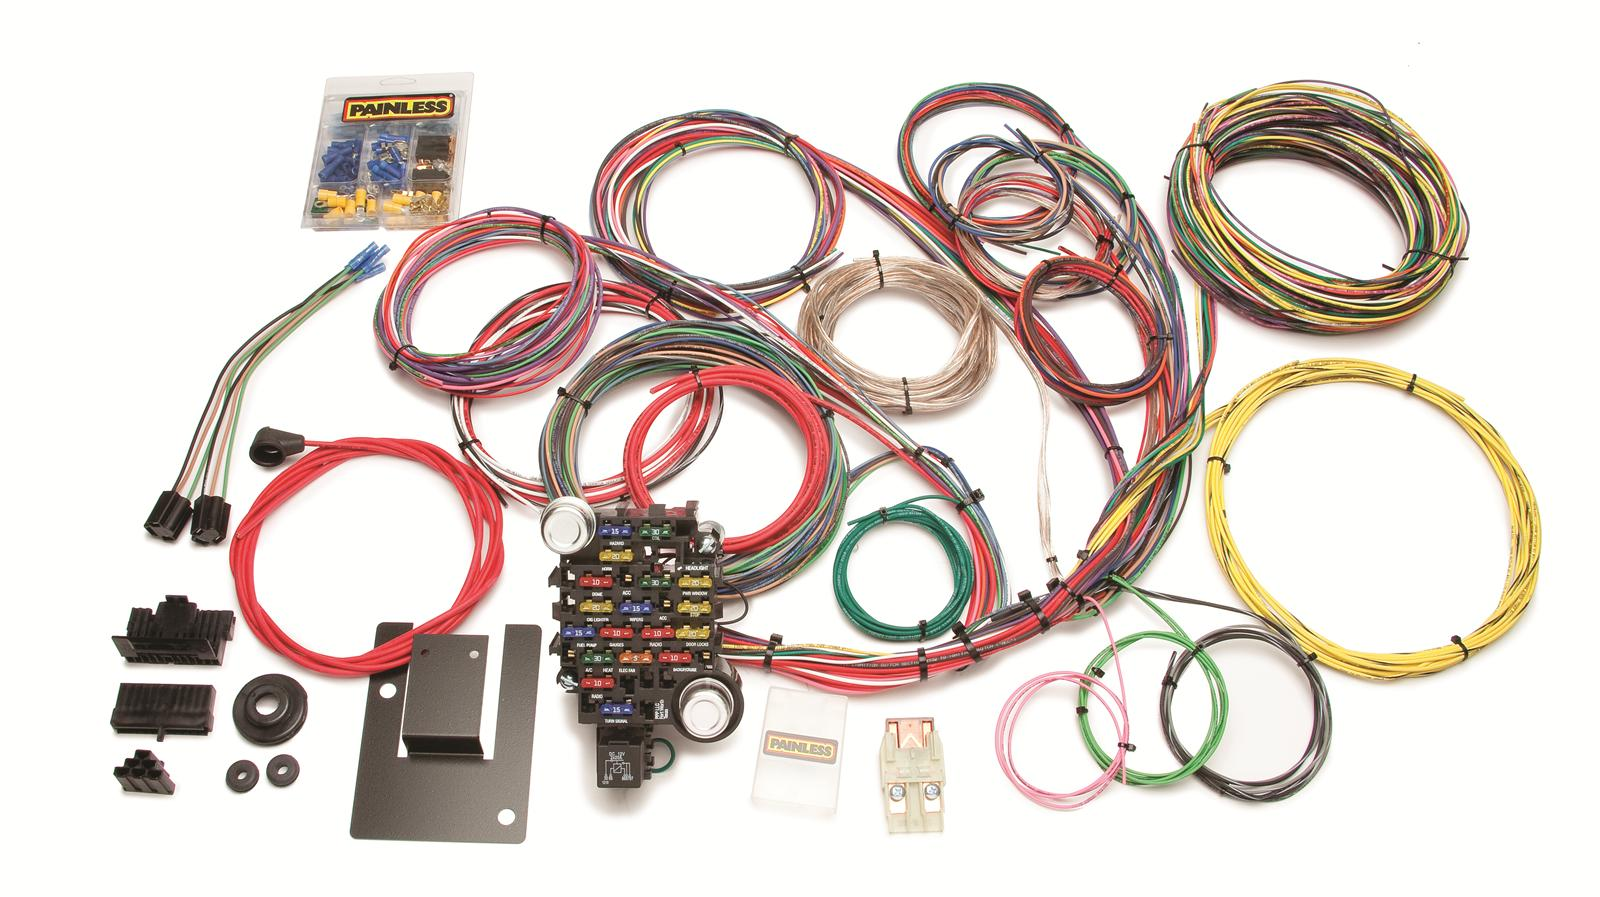 1955 Painless Wiring Harness 28 Diagram Images Chevy Bel Air Prf 20106 Xl Performance Circuit 57 Tri Five Harnesses